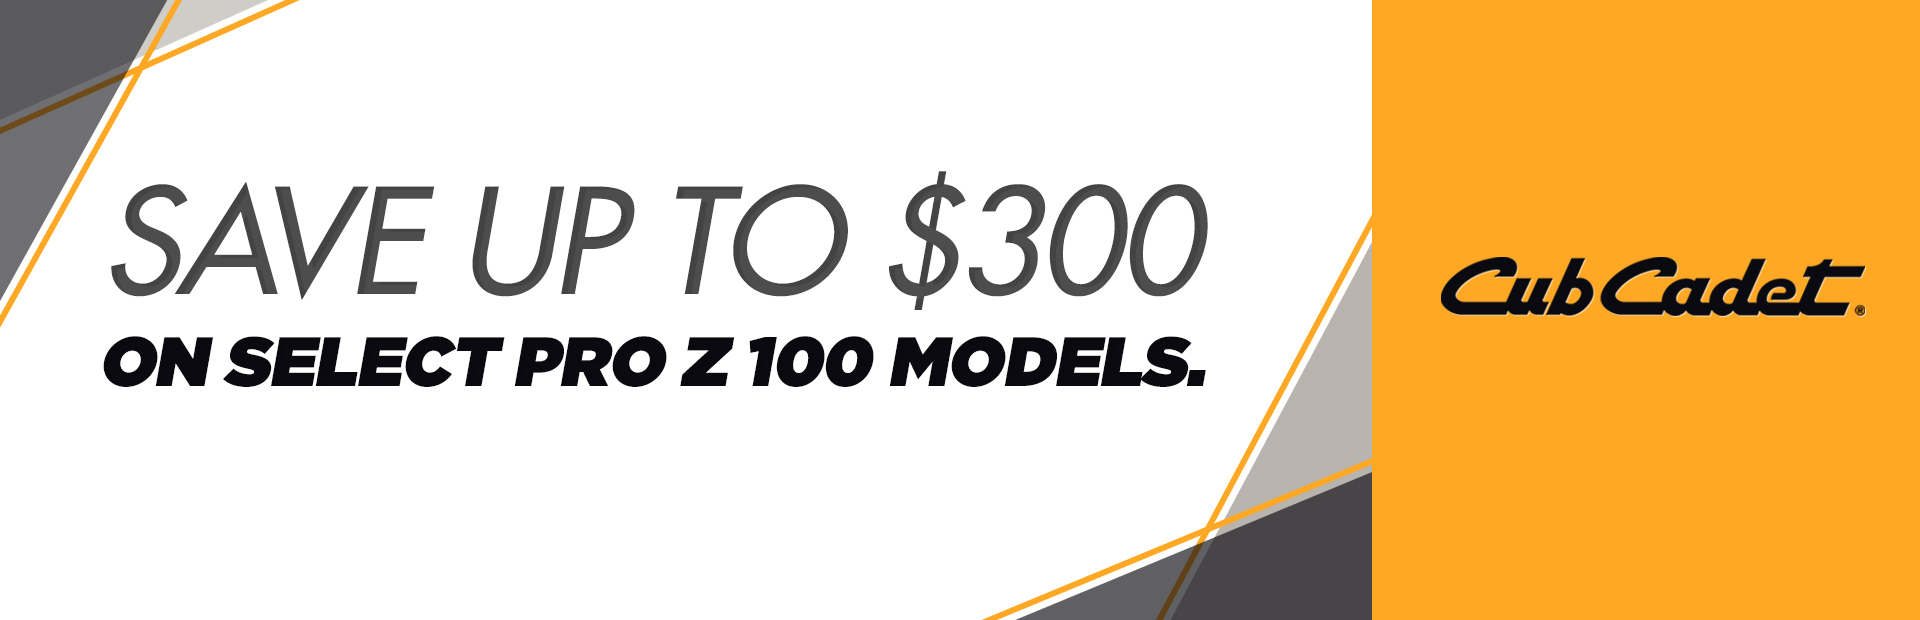 Save up to $300 on Select PRO Z 100 Models